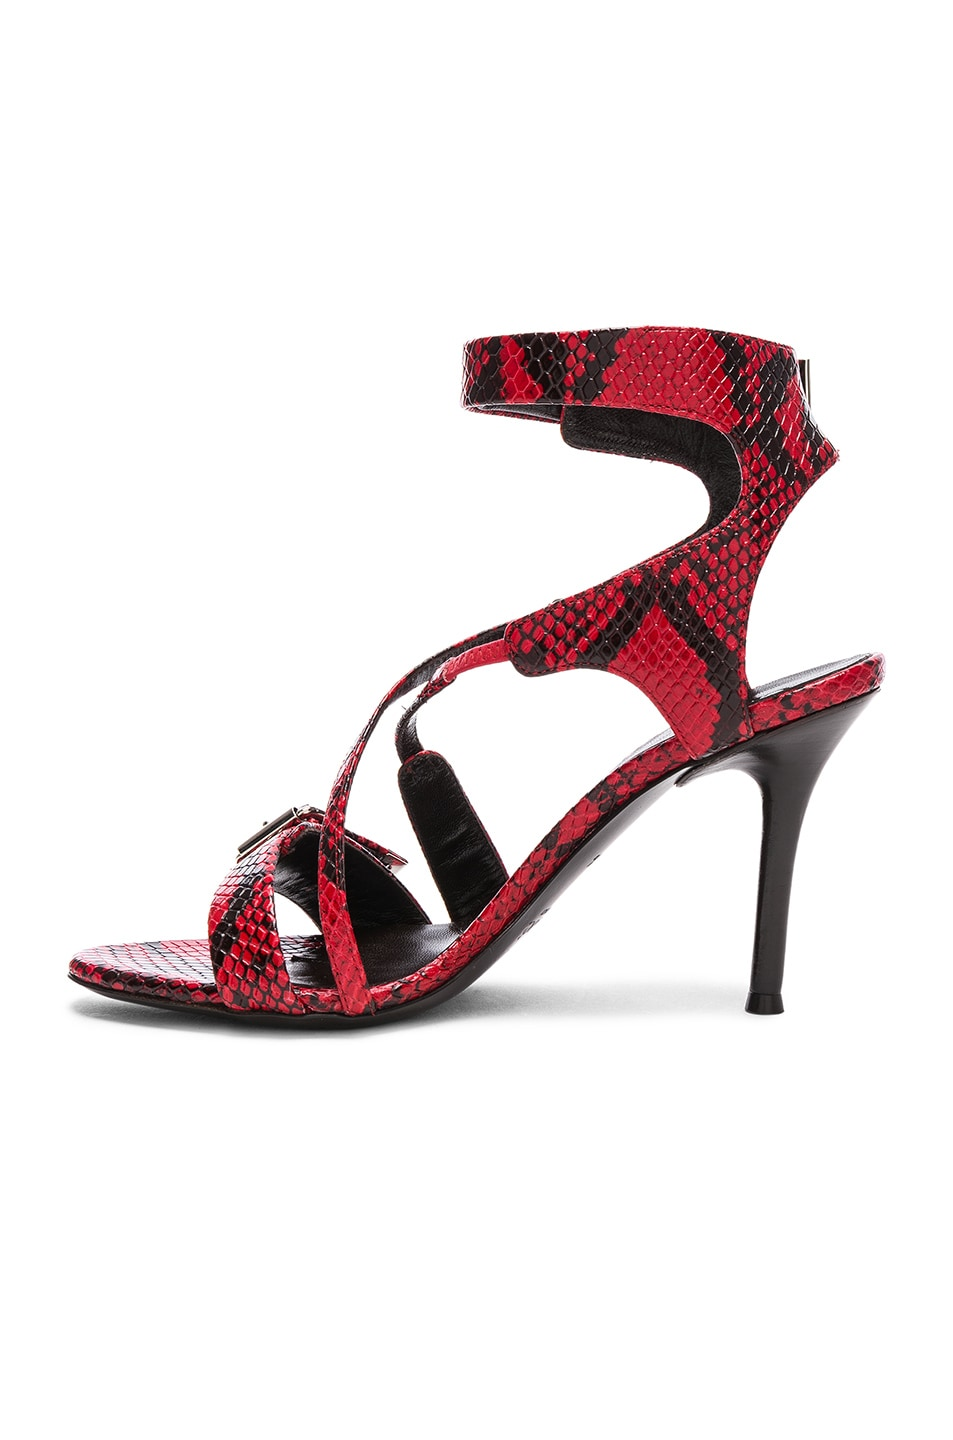 Image 5 of Chloe Scott Python Print Leather Ankle Strap Sandals in Gypsy Red